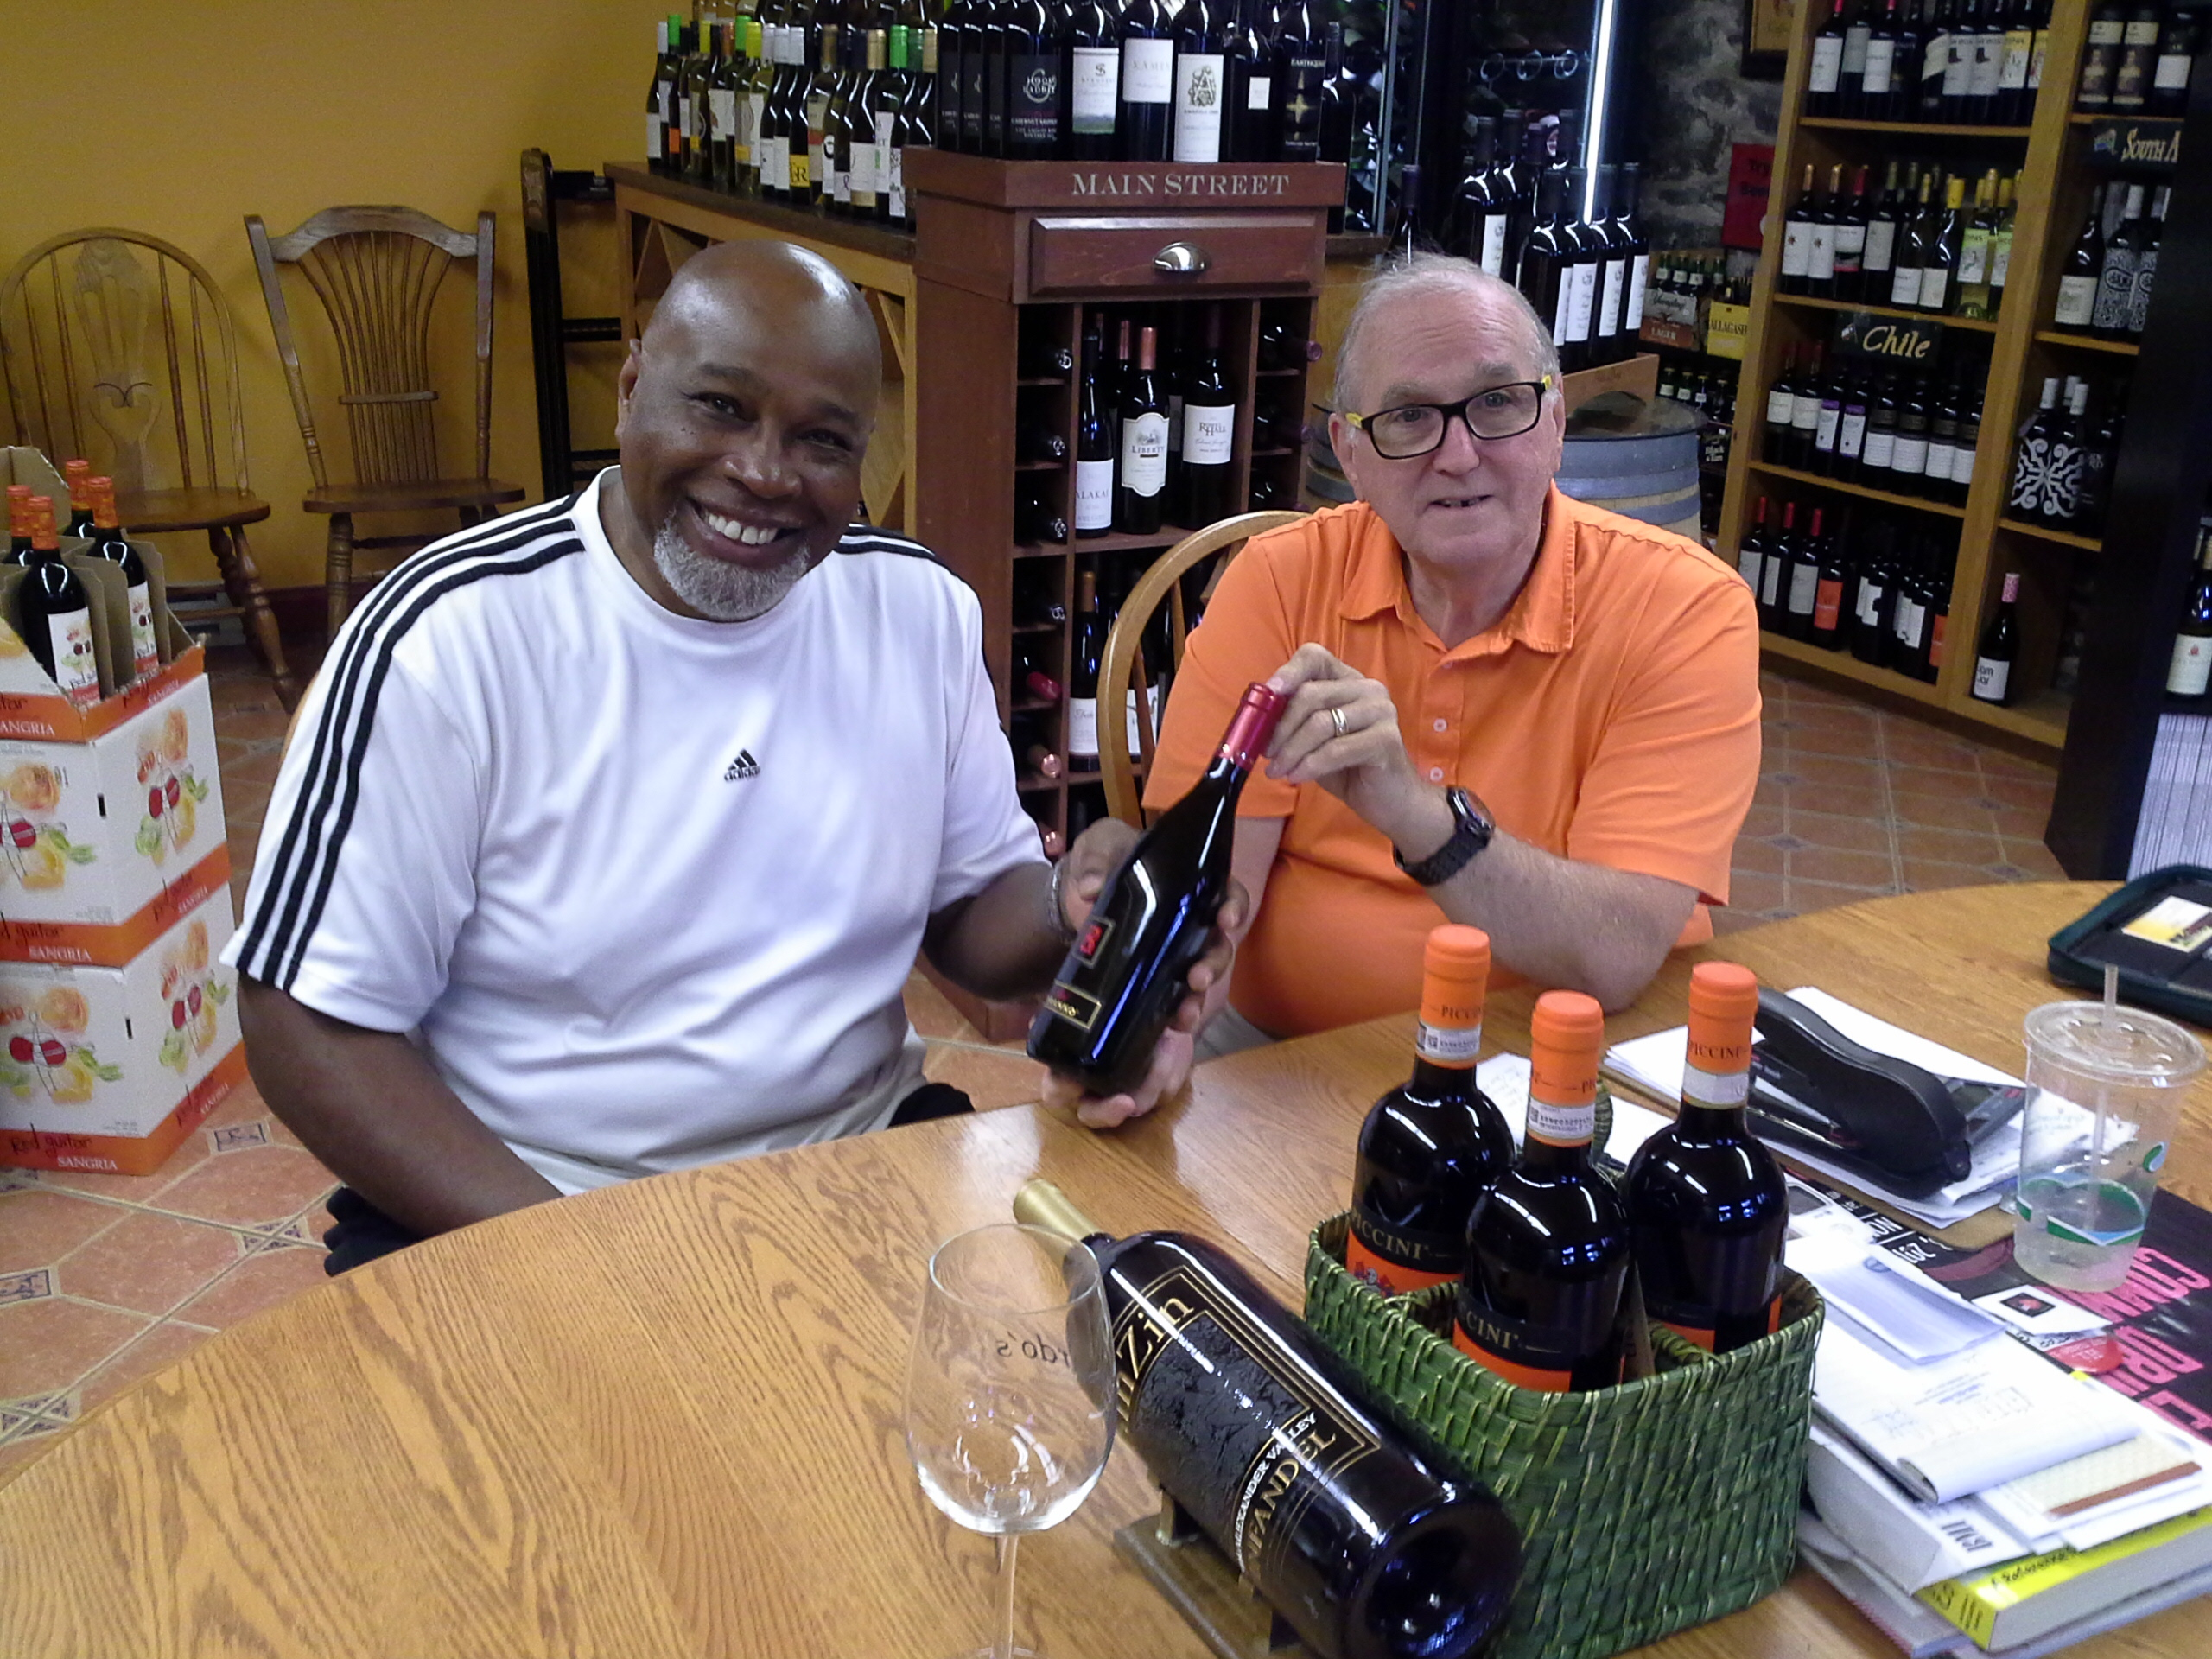 Bump City Wine Co. founder Roger Smith, left, visits with Richard Rourke at Tutto Bene Wine & Cheese Cellar in downtown Lowell.